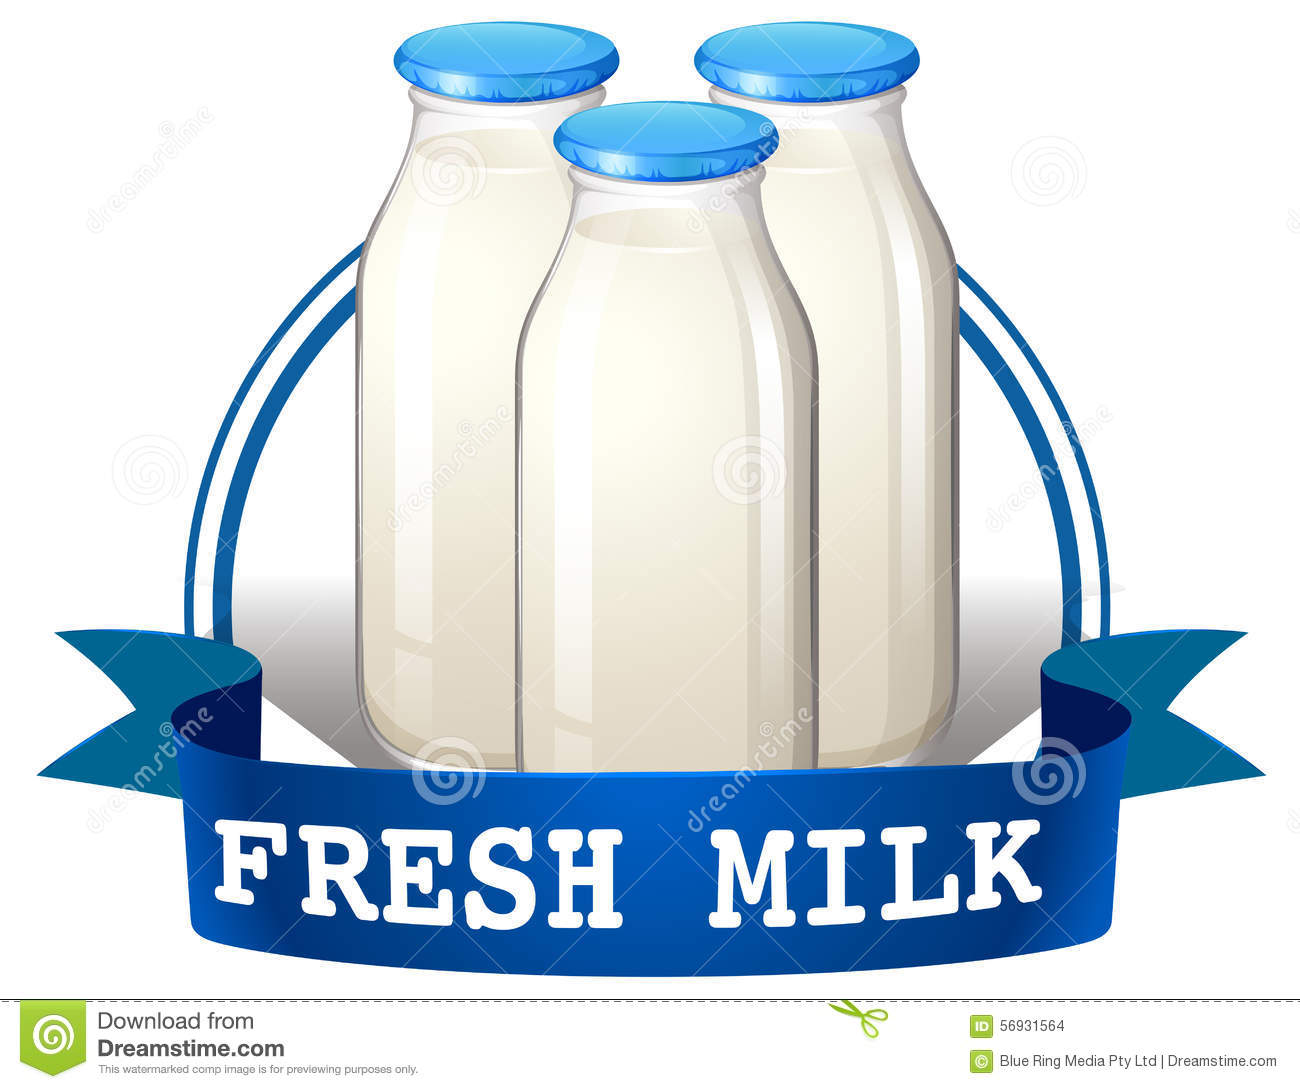 Dairy Product stock vector. Illustration of clipart, milk ... (1300 x 1089 Pixel)